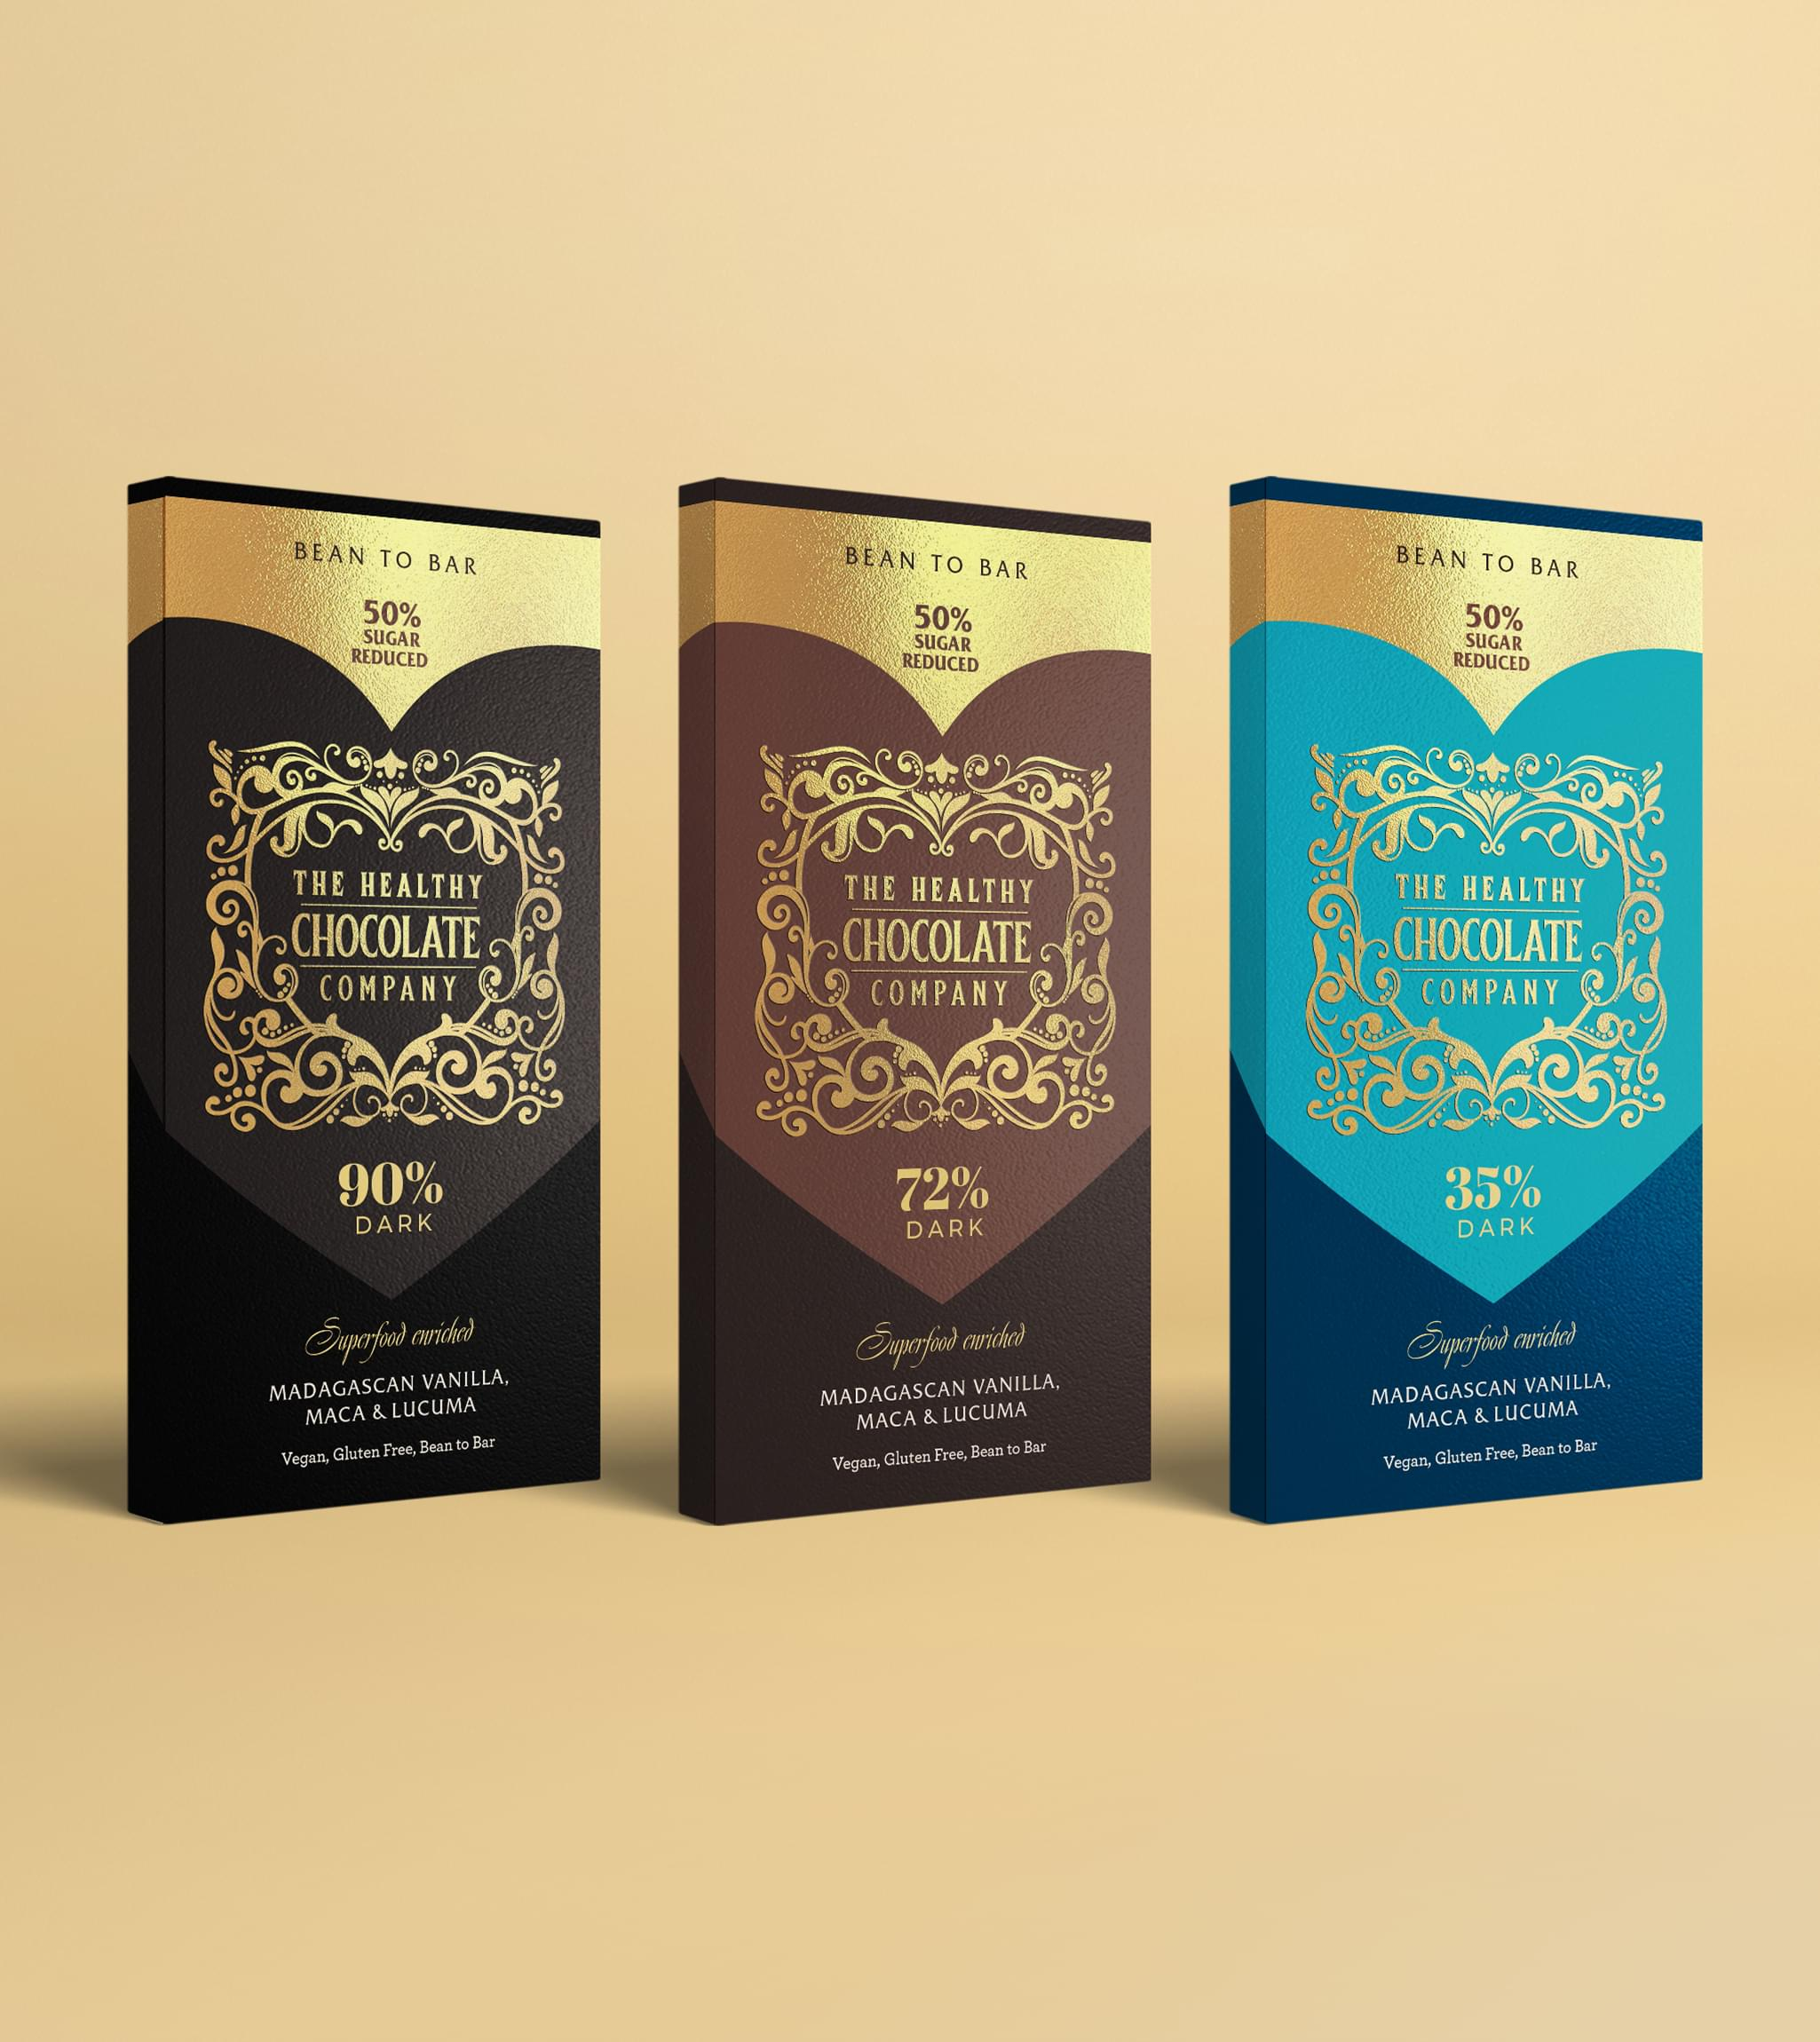 the healthy chocolate Packaging